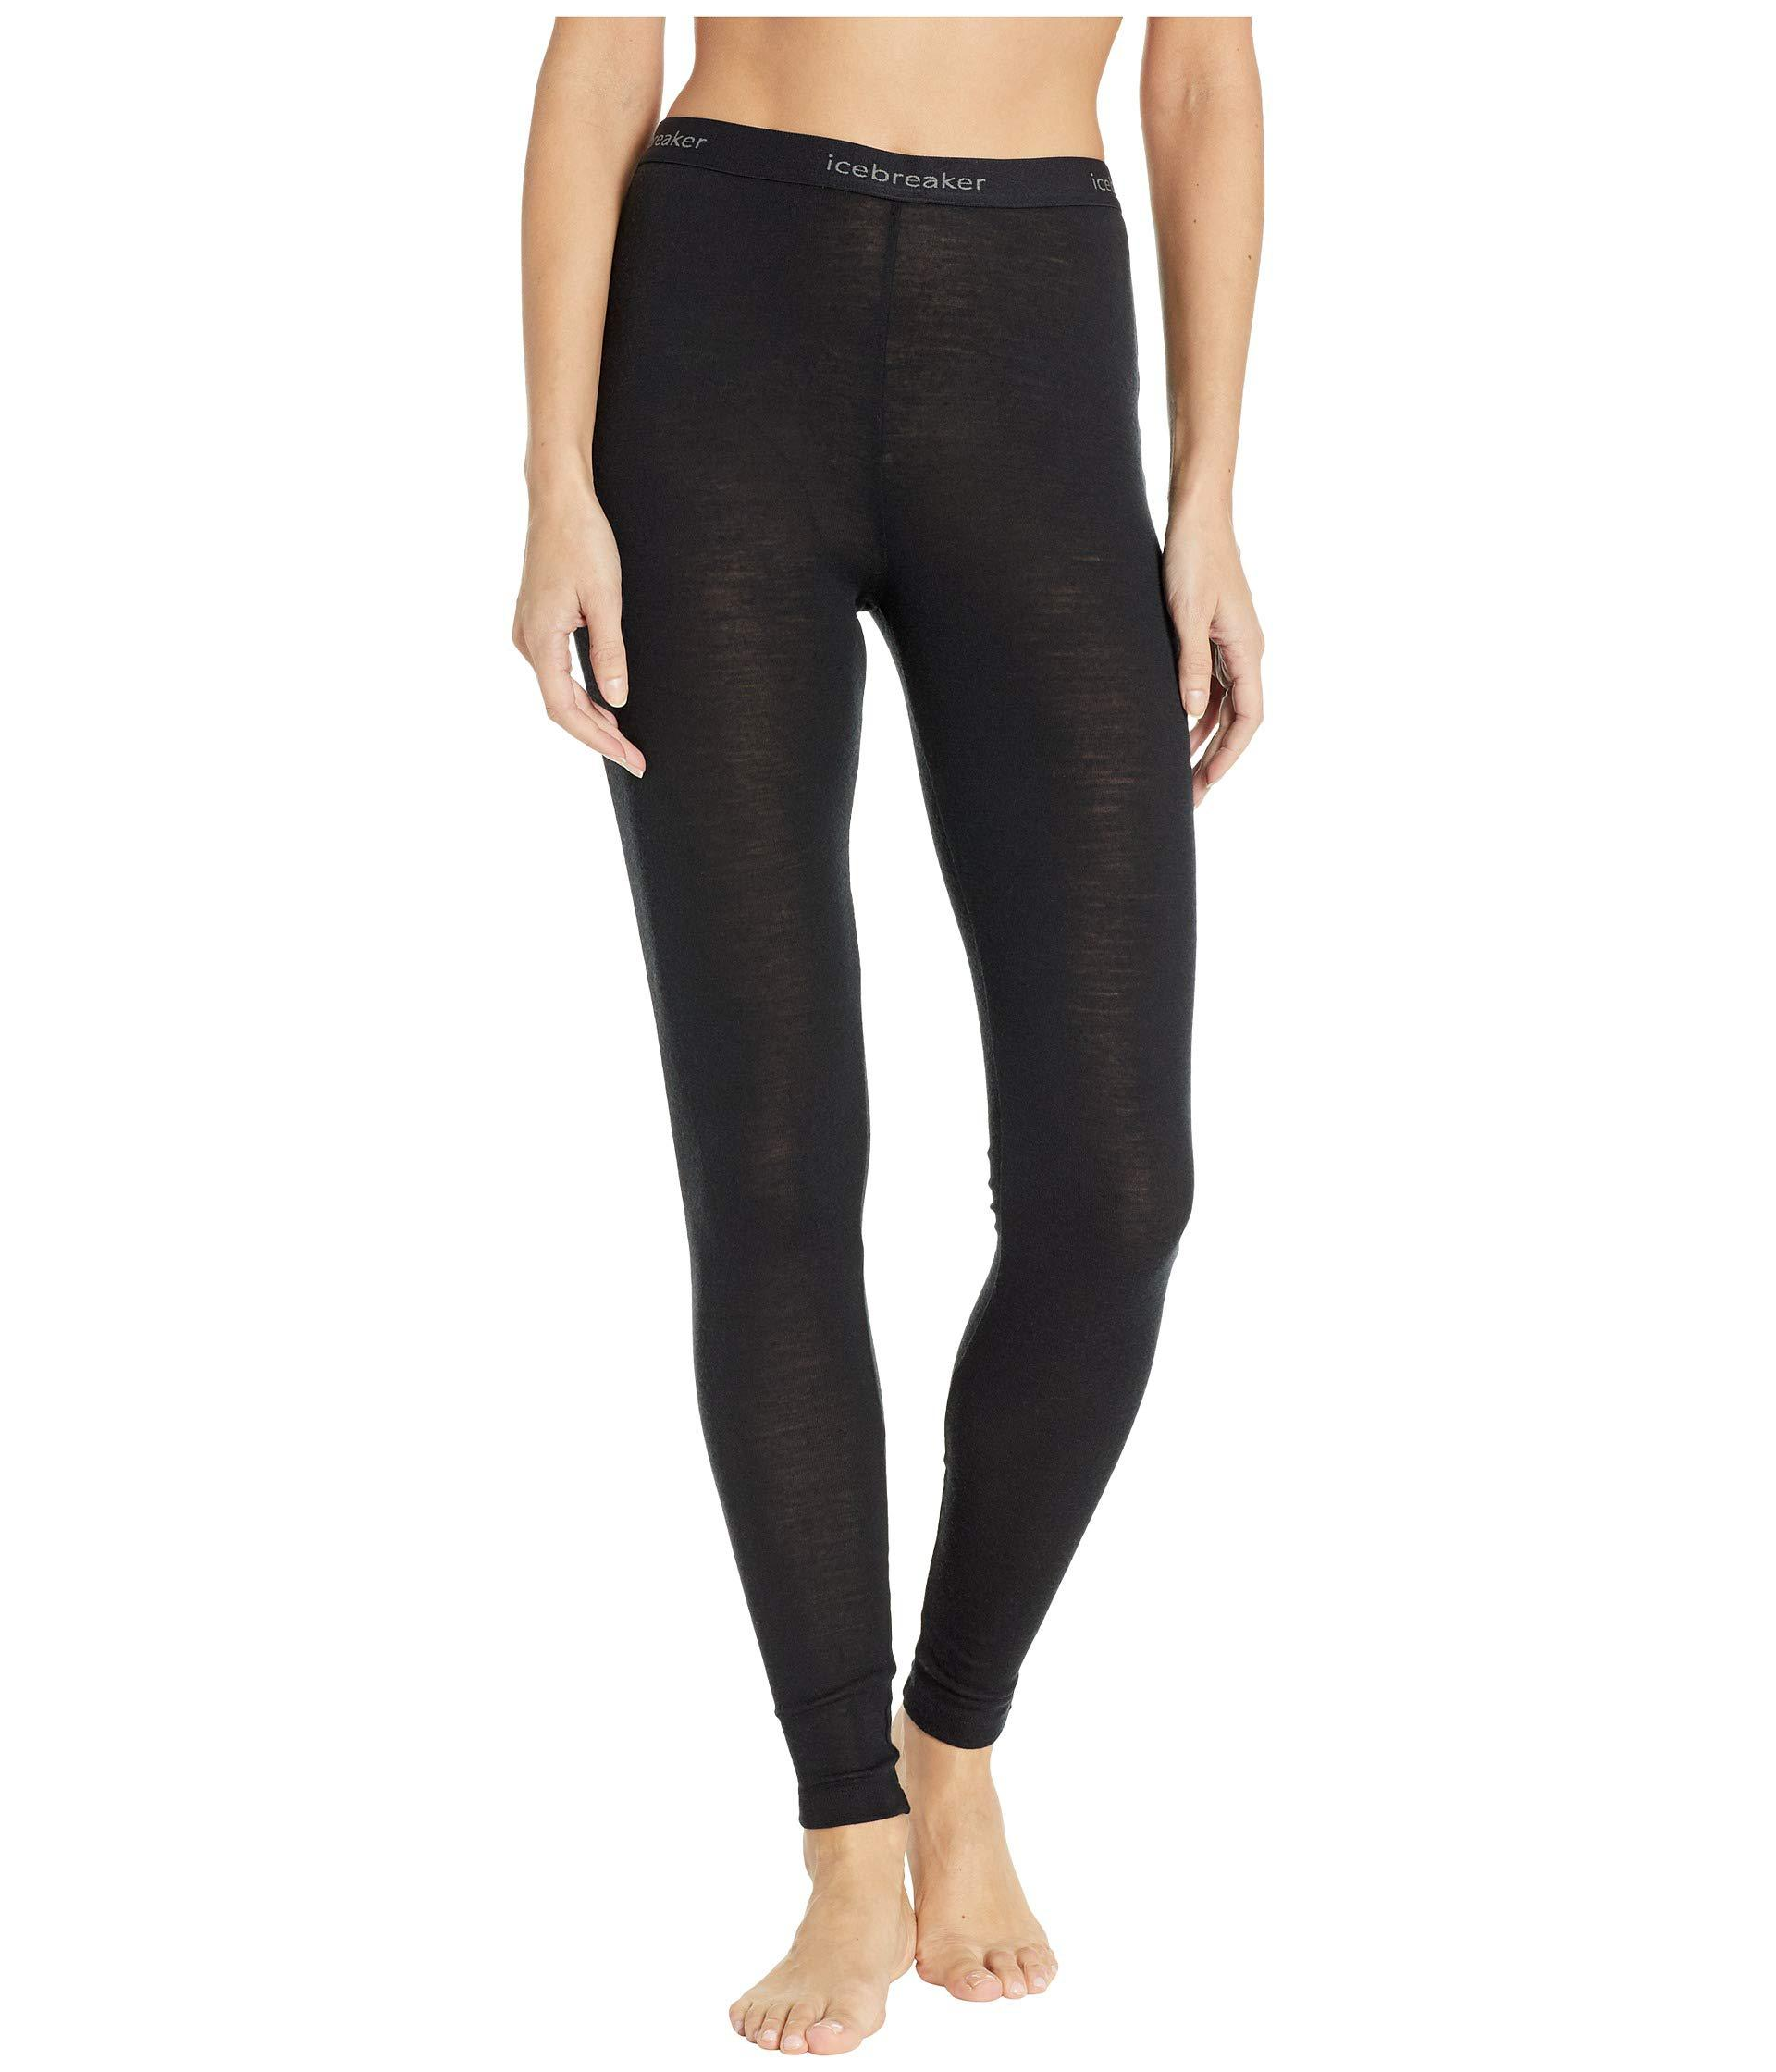 fa5809bc30e Icebreaker - 200 Oasis Merino Base Layer Leggings (black) Women's Casual  Pants - Lyst. View fullscreen